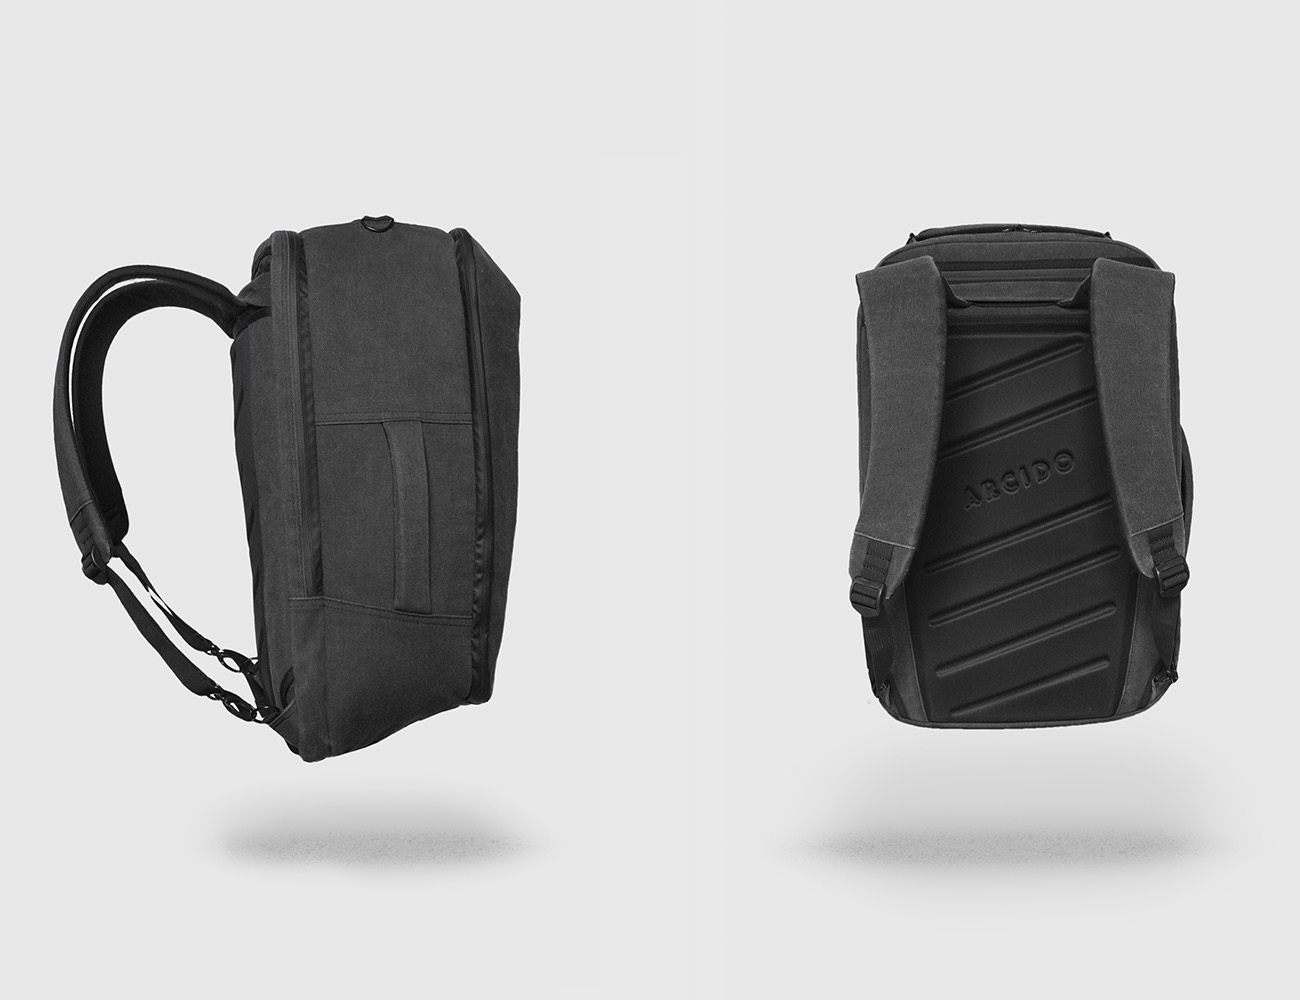 The Arcido Bag – Smarter Carry-on Travel